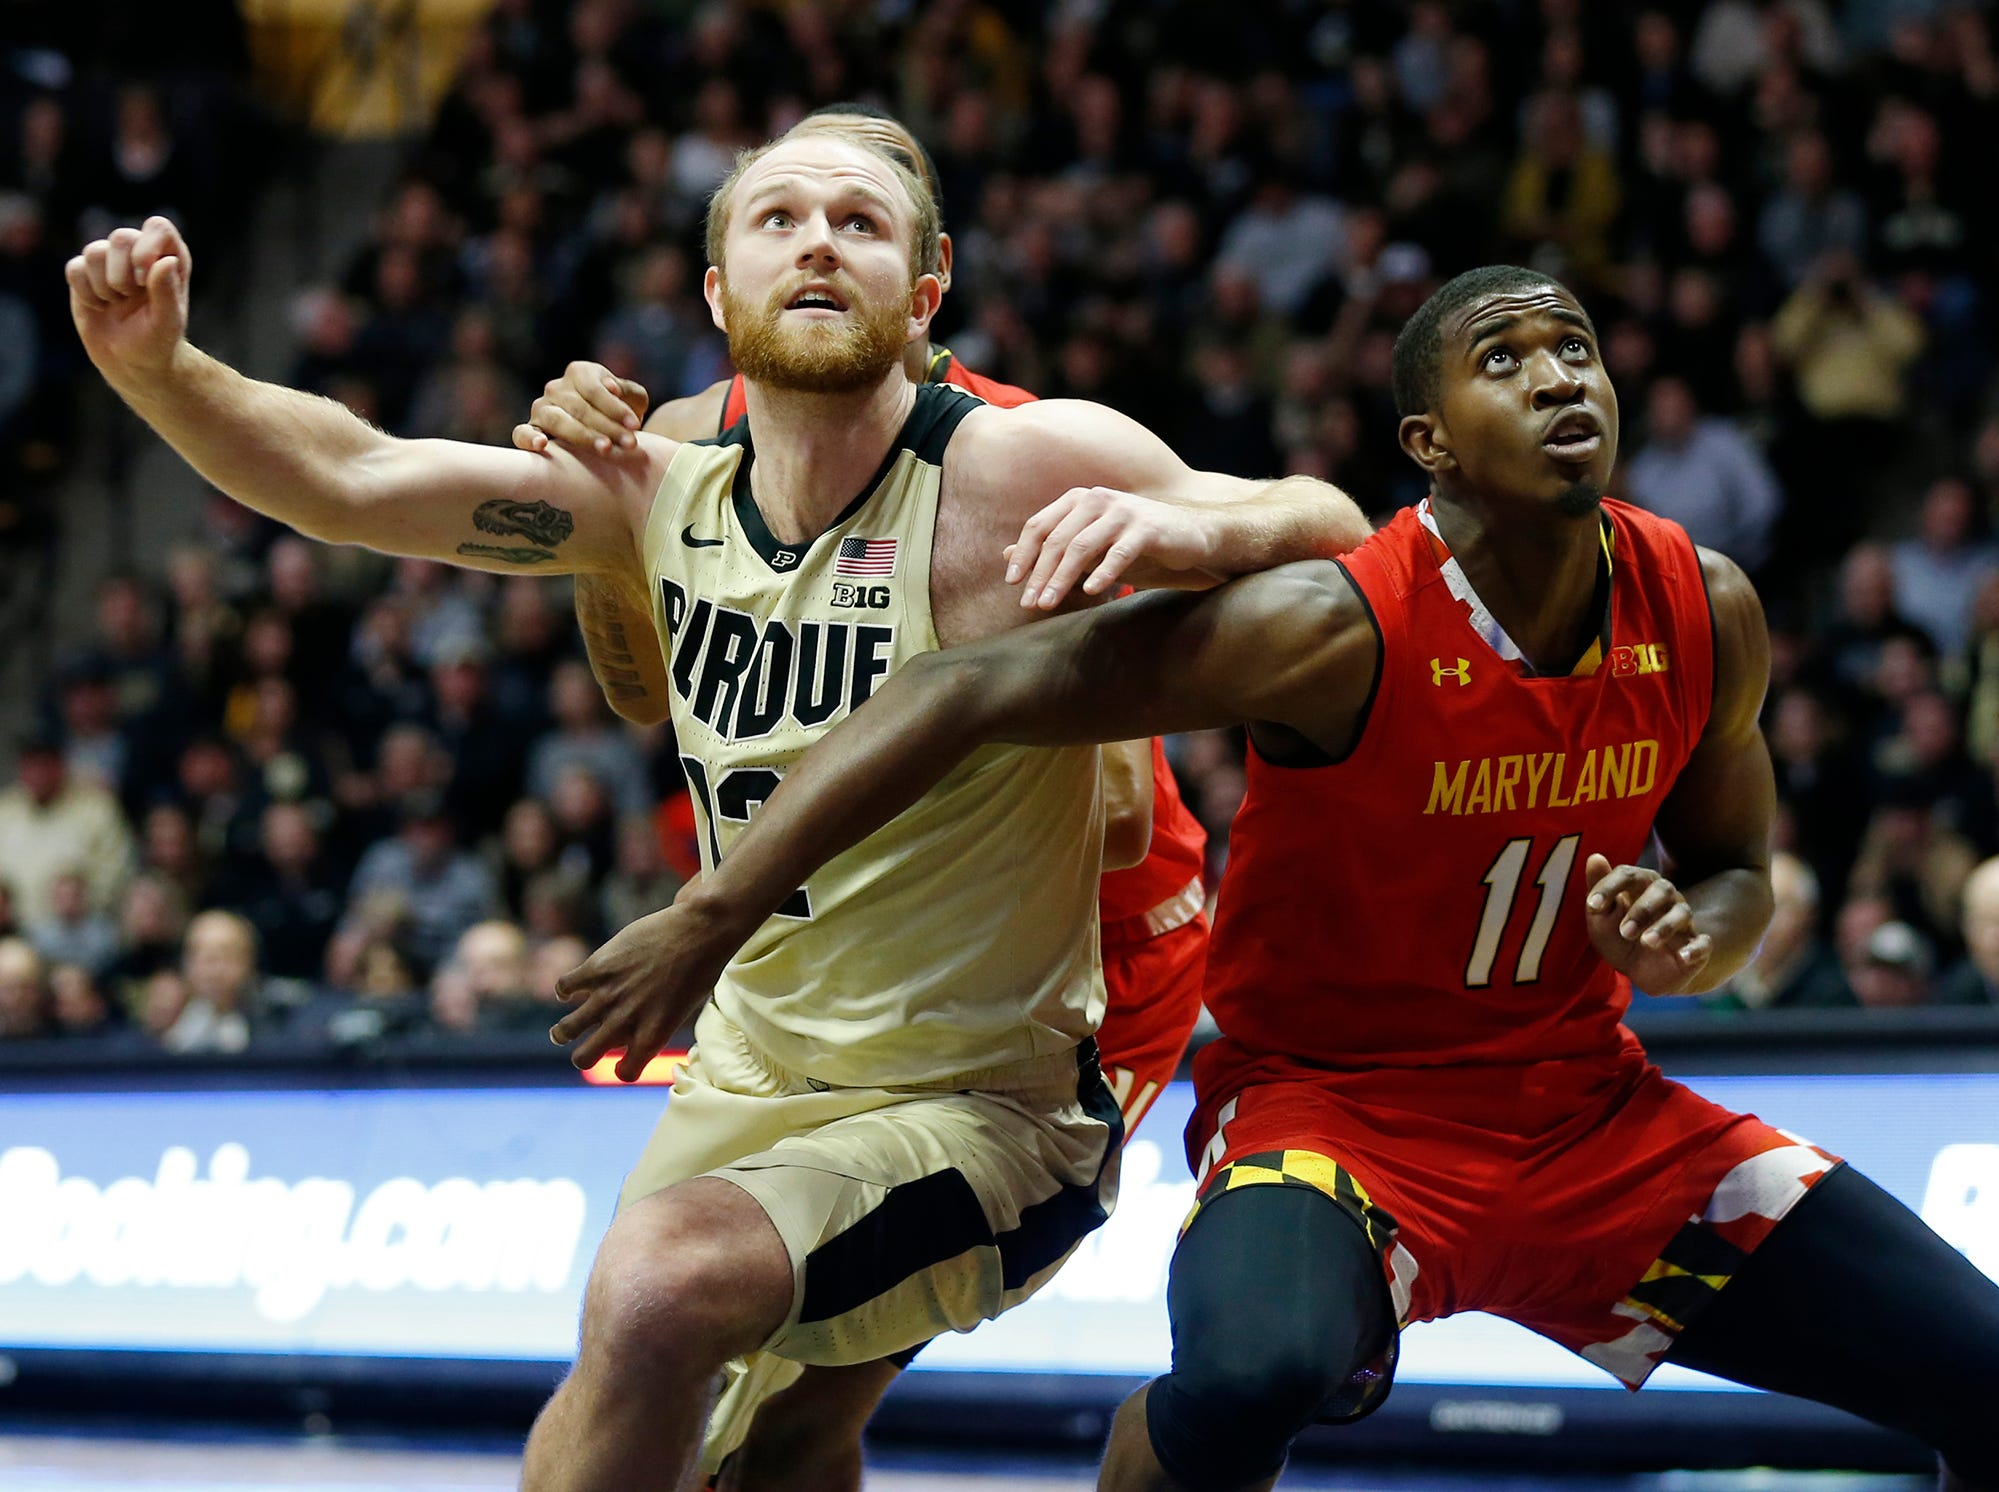 Evan Boudreaux of Purdue wrestles with Darryl Morsell of Maryland for position Thursday, December 6, 2018, at Mackey Arena. Purdue defeated Maryland 62-60.